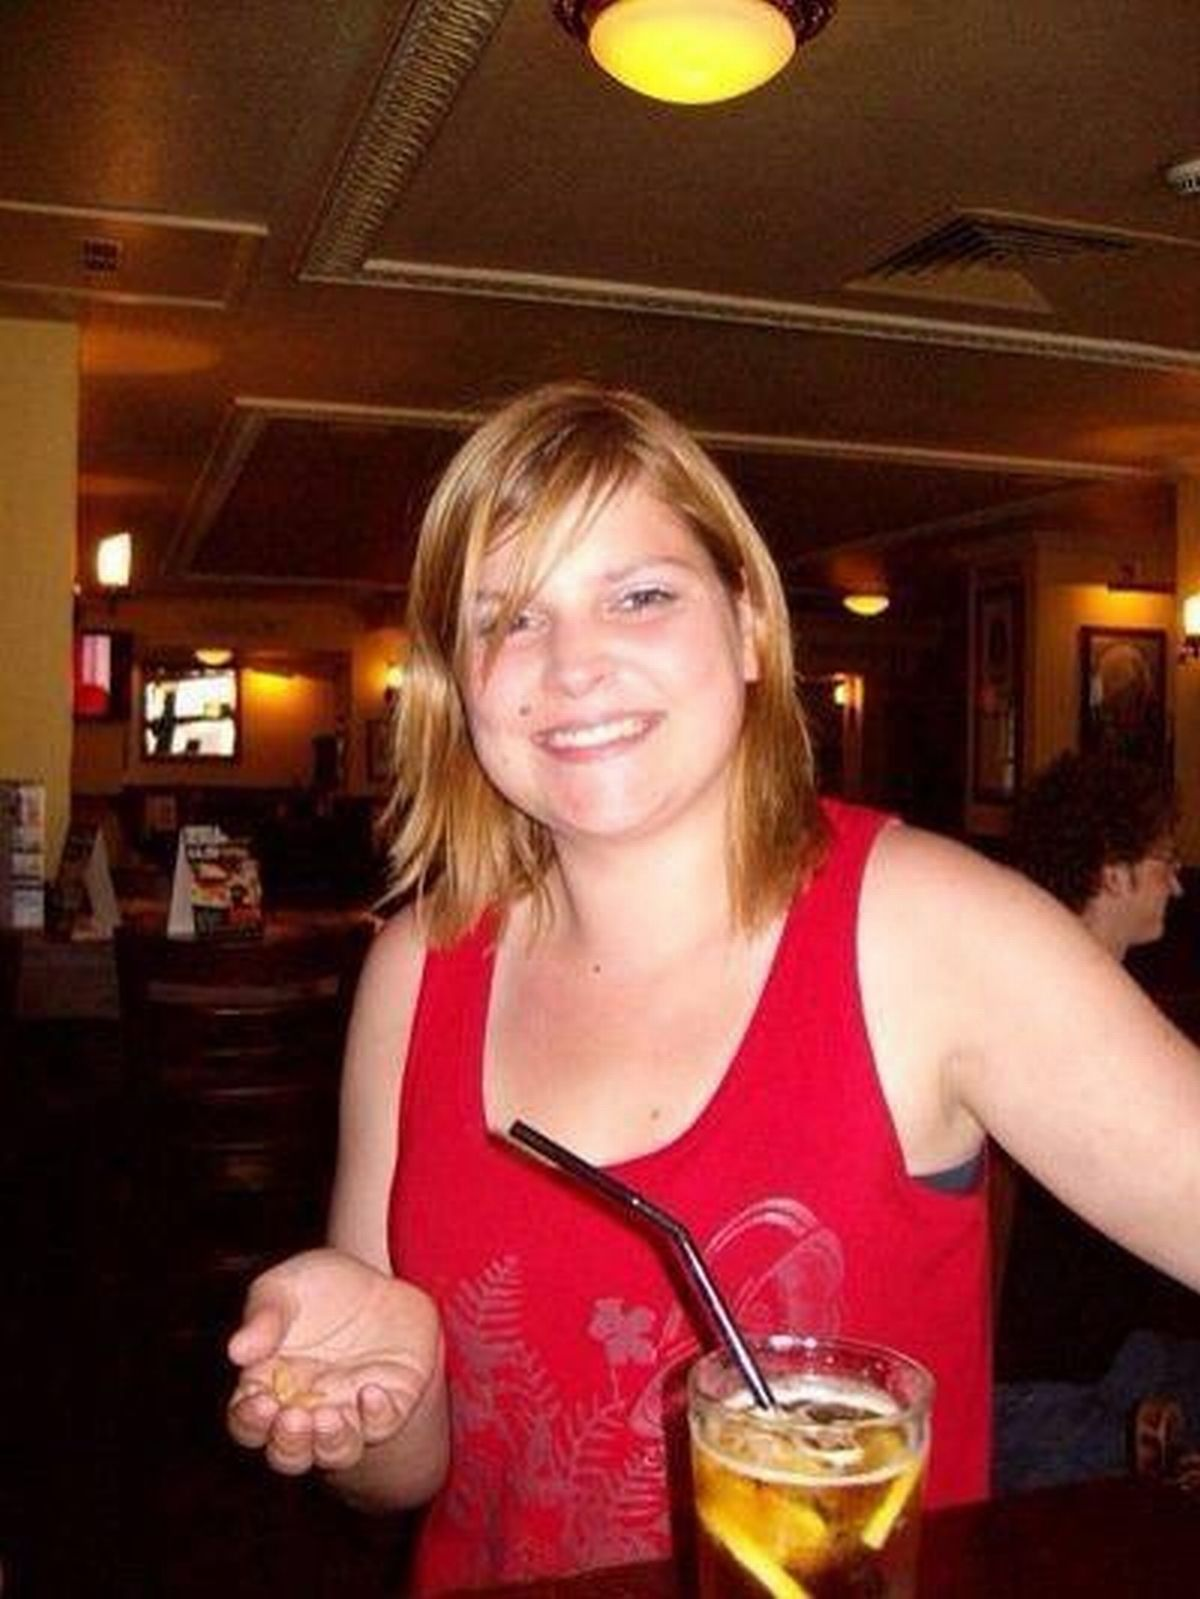 Belinda Dalby was found dead at Jordan House, Millbrook Road East, on Friday.